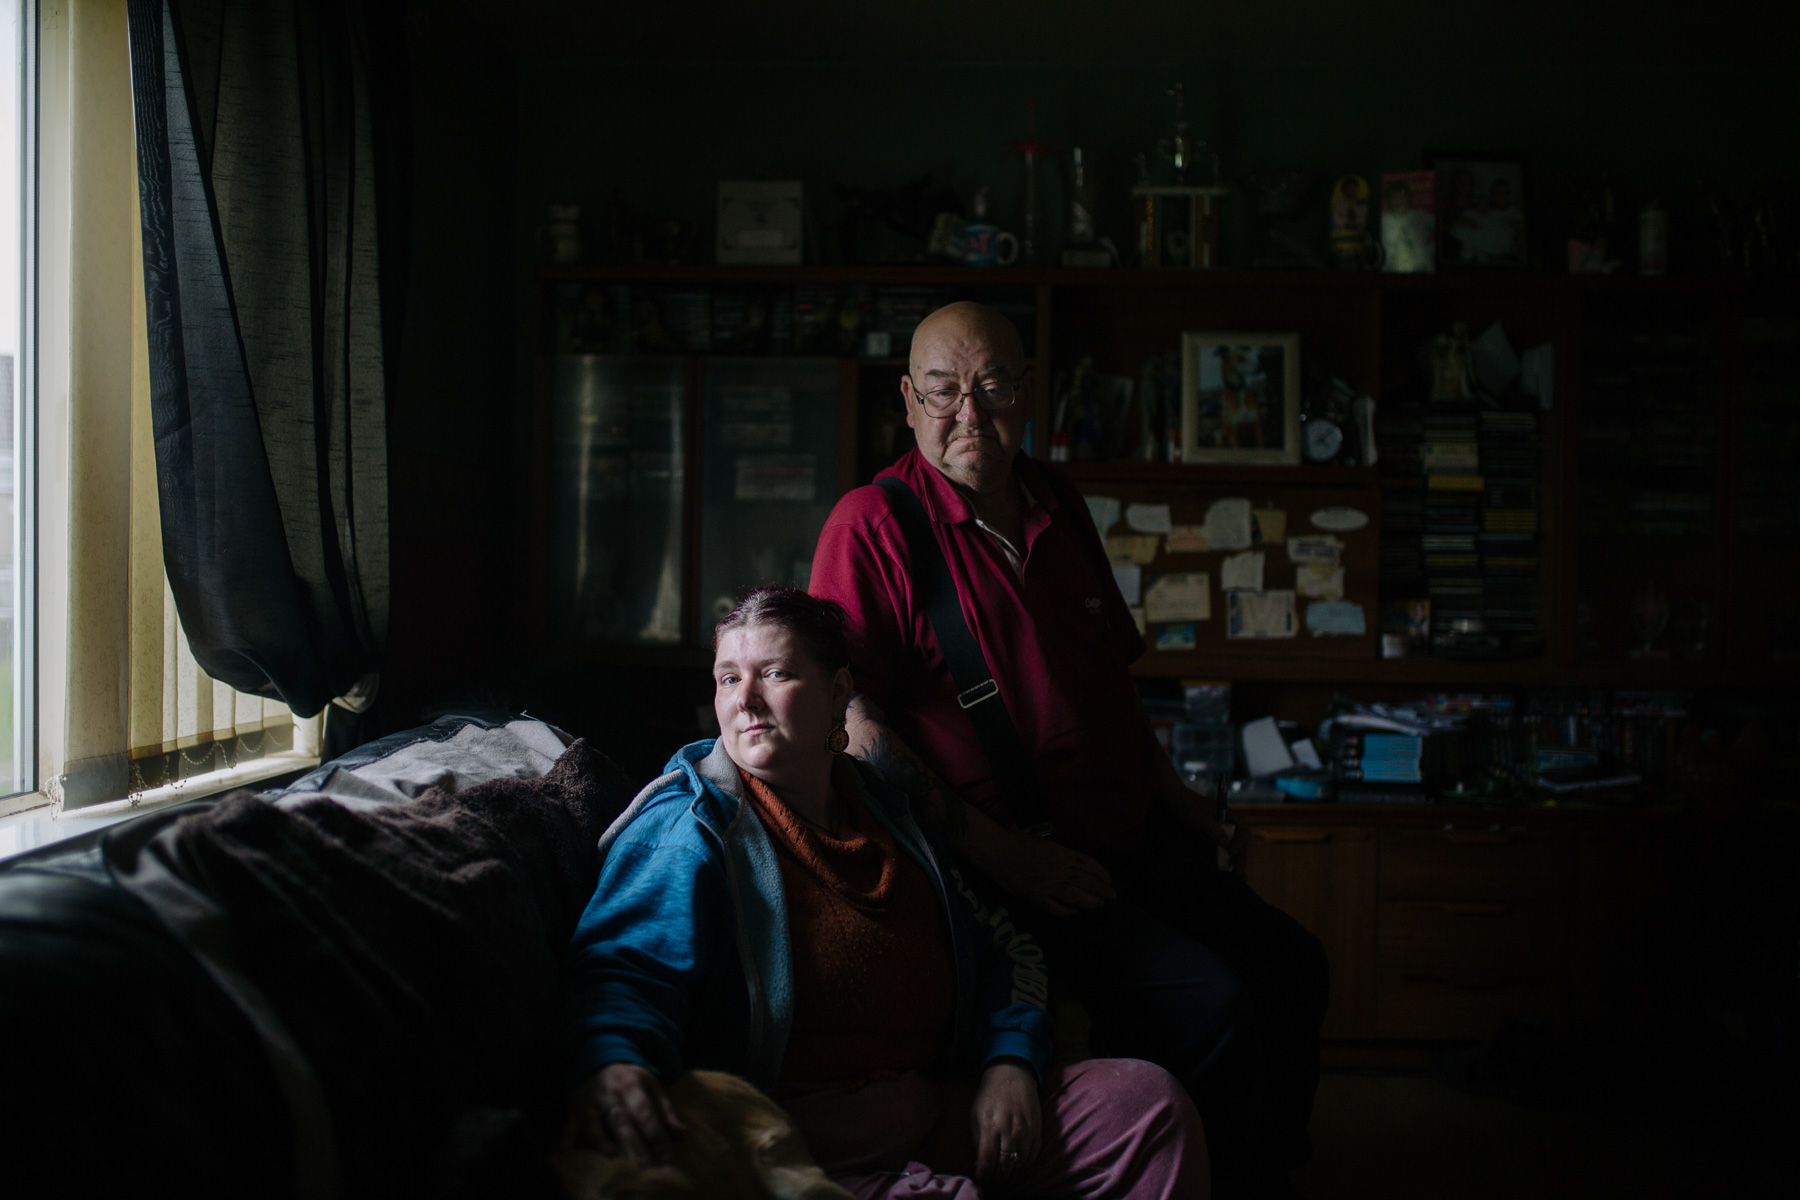 Suzanne Jenkins, left, and her father, William John Jenkins, live in the Gurnos housing estate. Suzanne lost her leg in an accident 15 years ago after being struck by a drunk driver age 21.